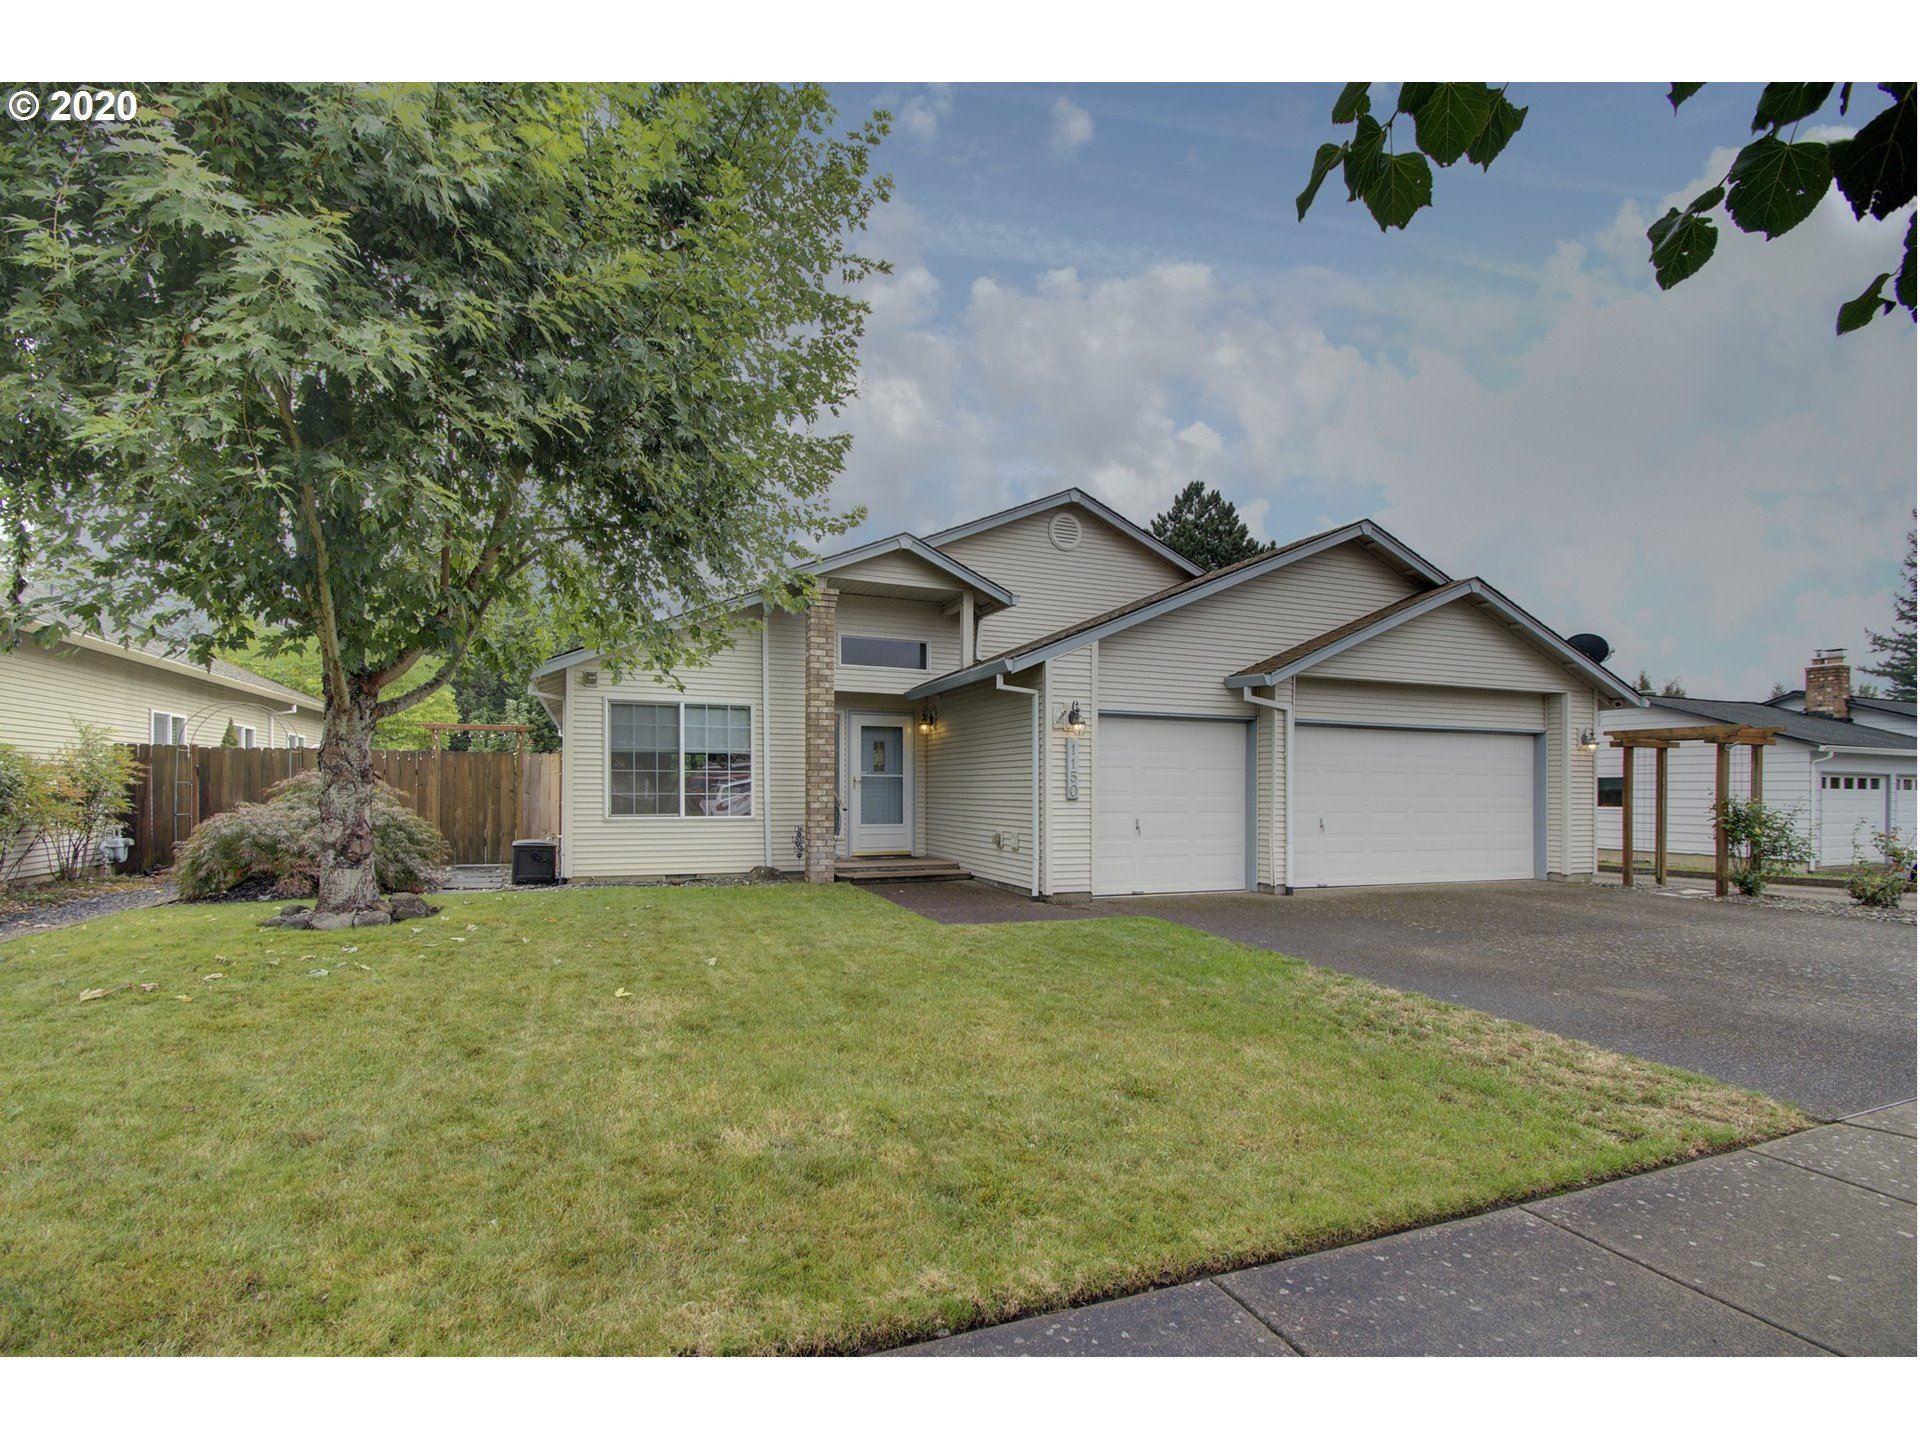 1150 SW HENSLEY RD, Troutdale, OR 97060 - MLS#: 20348008